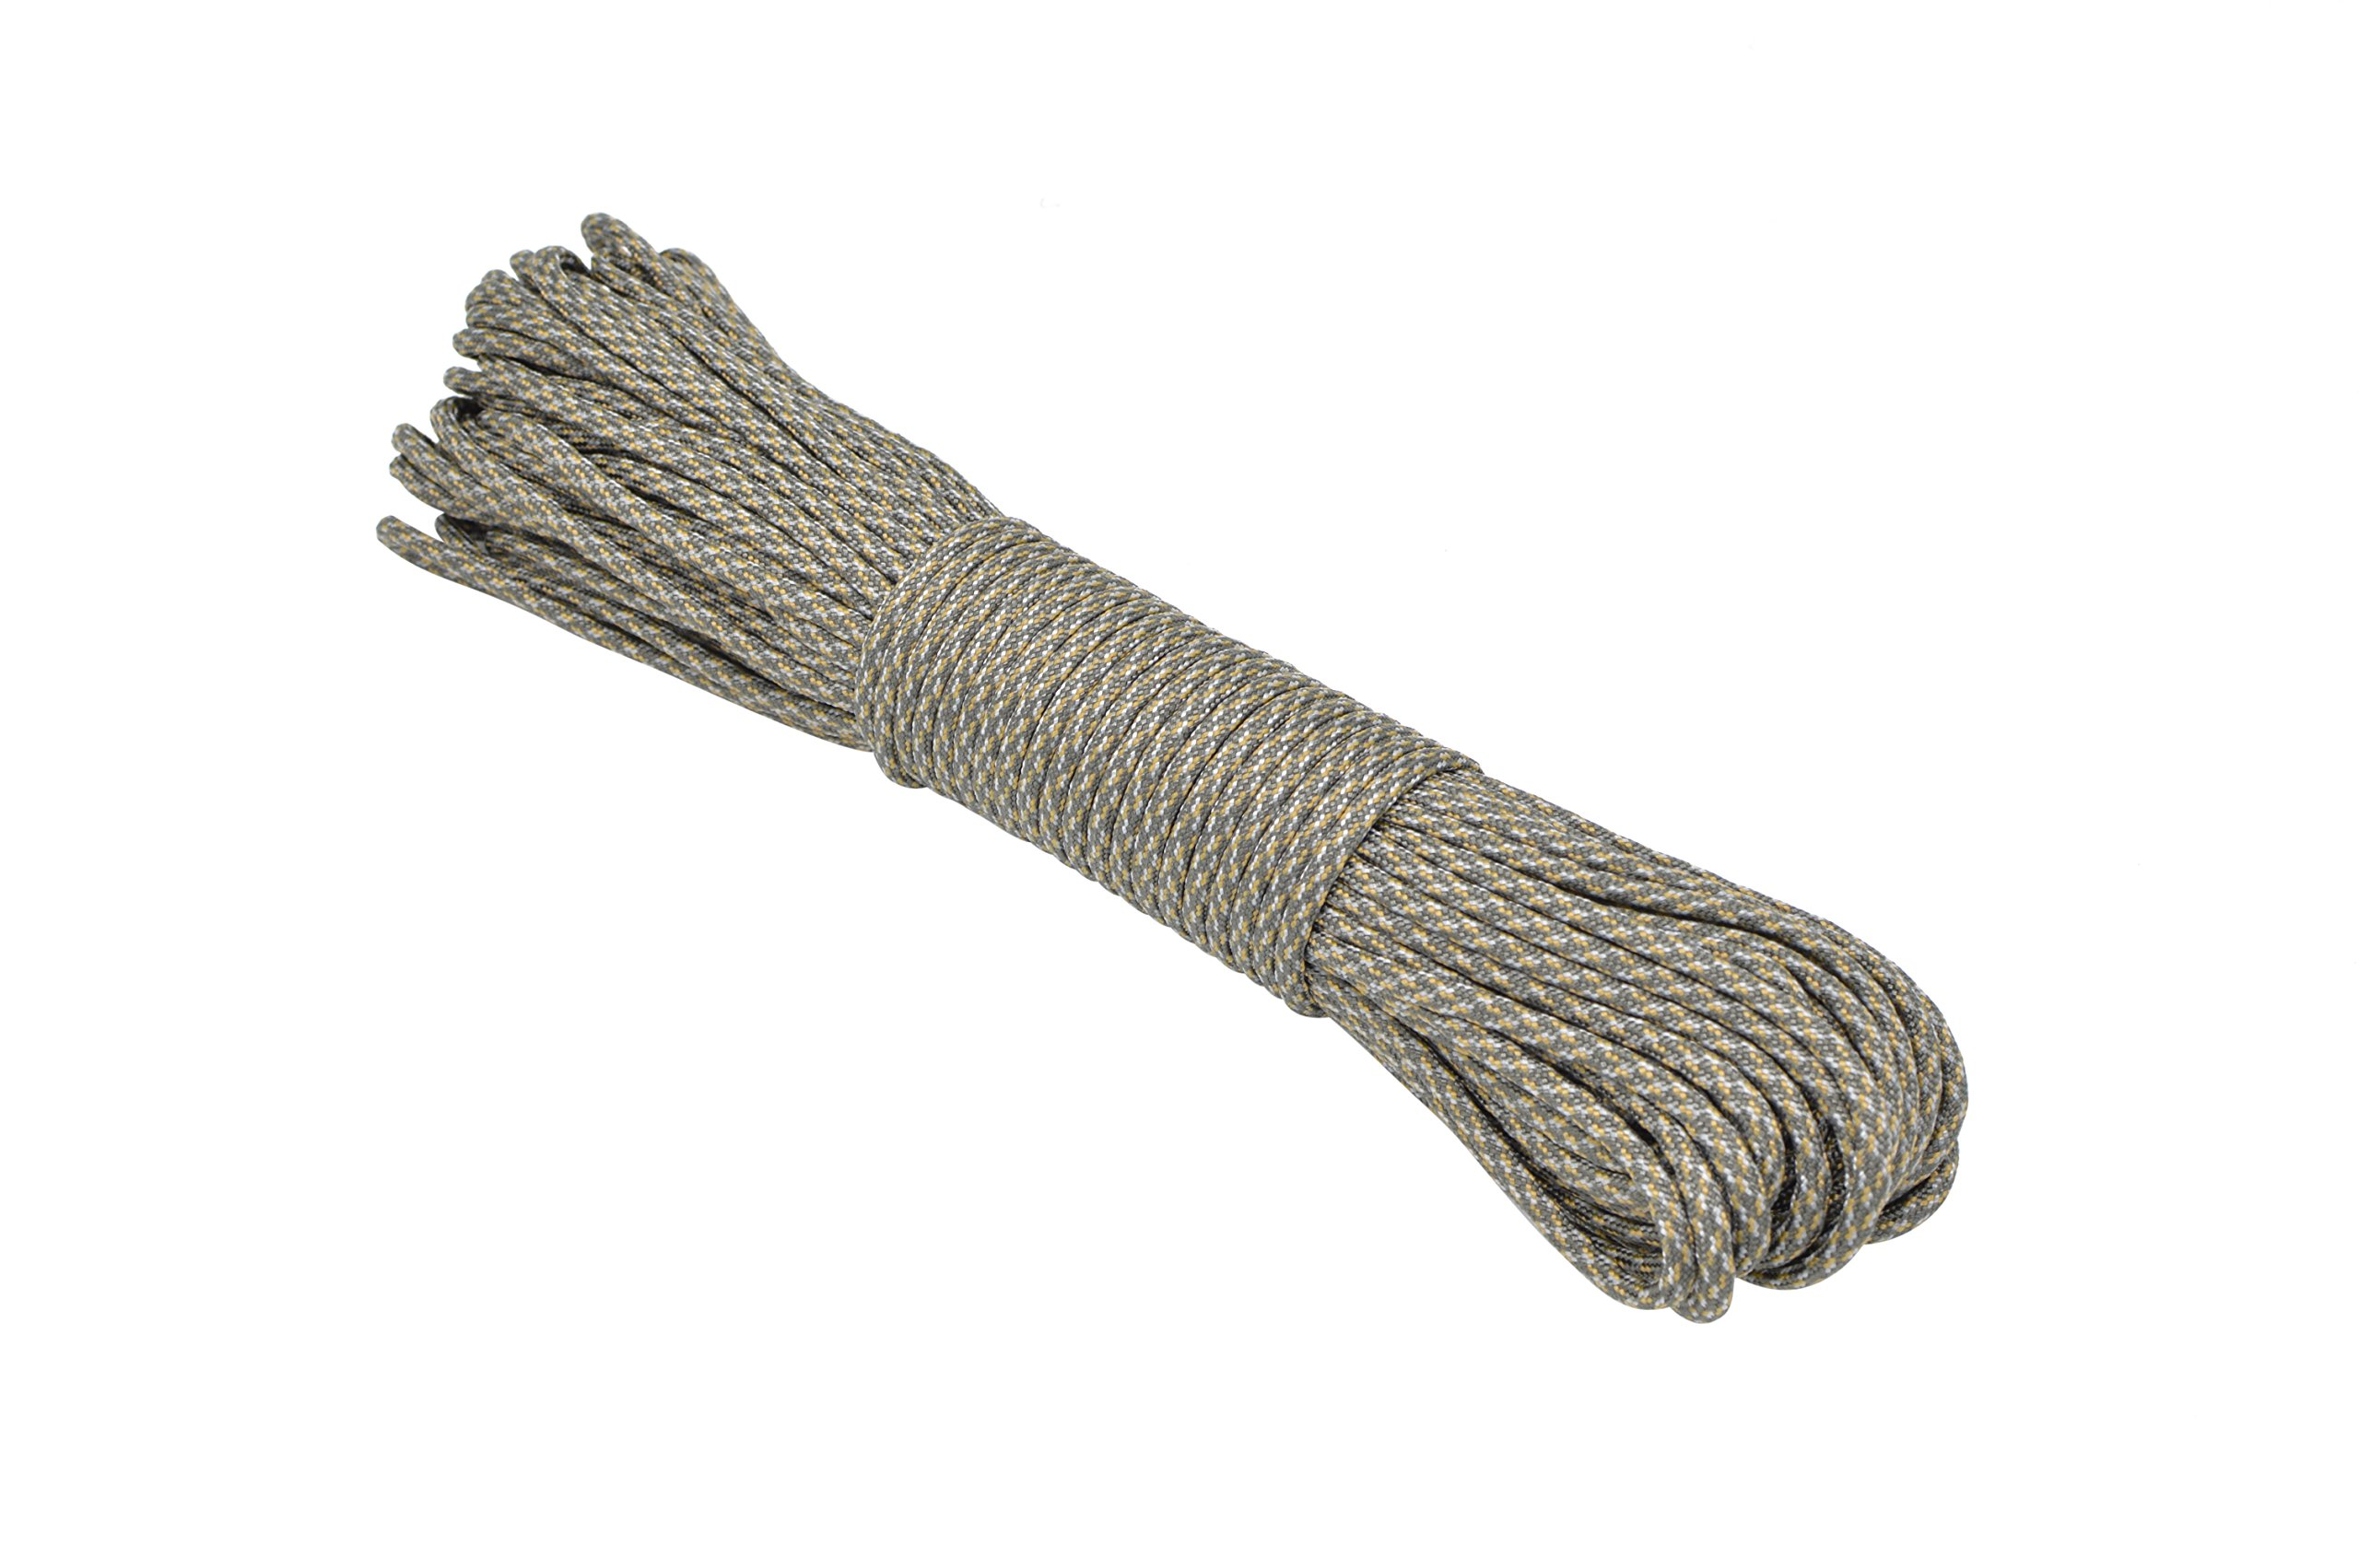 Paracord Rope 550 Type III Paracord - Parachute Cord - 550lb Tensile Strength - 100% Nylon - Made In The USA (ACU Digital, 100 Feet) by Paracord Rope (Image #2)